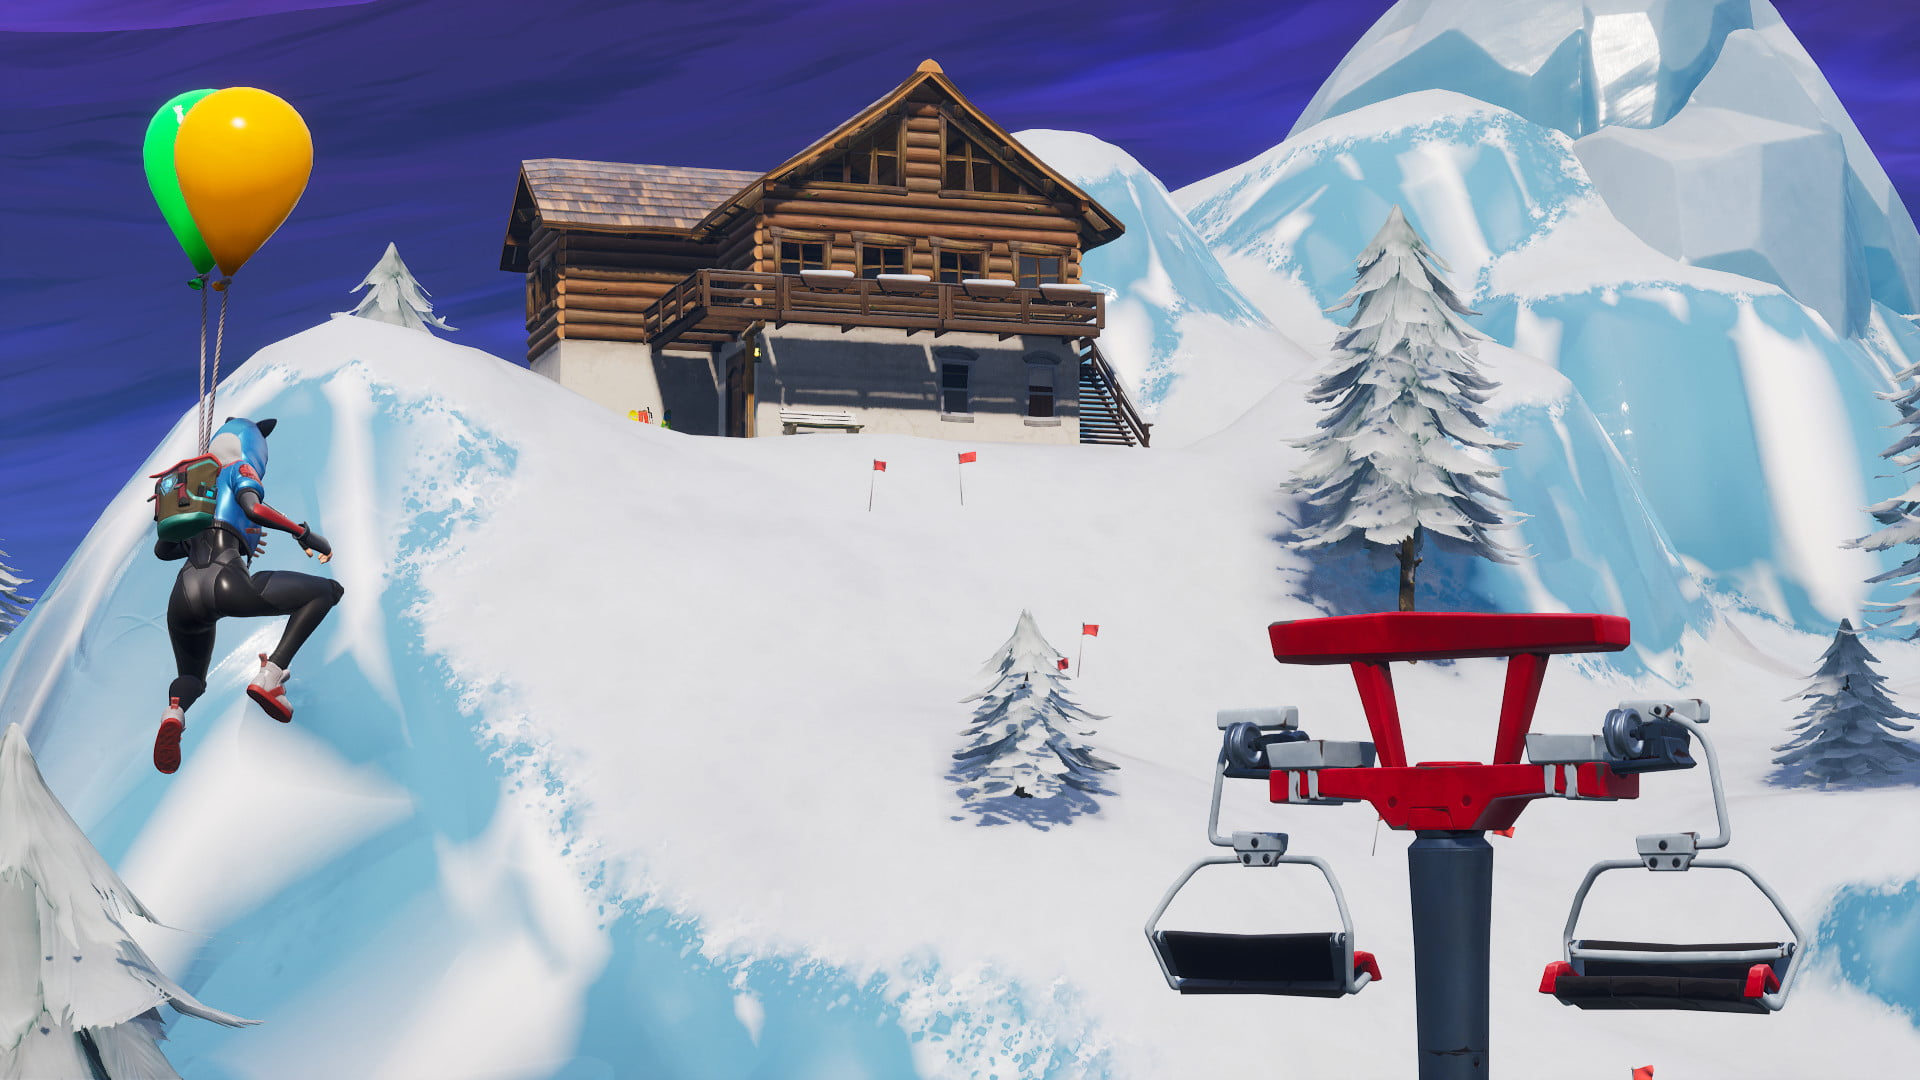 Searching between 3 ski lodges for the battle star